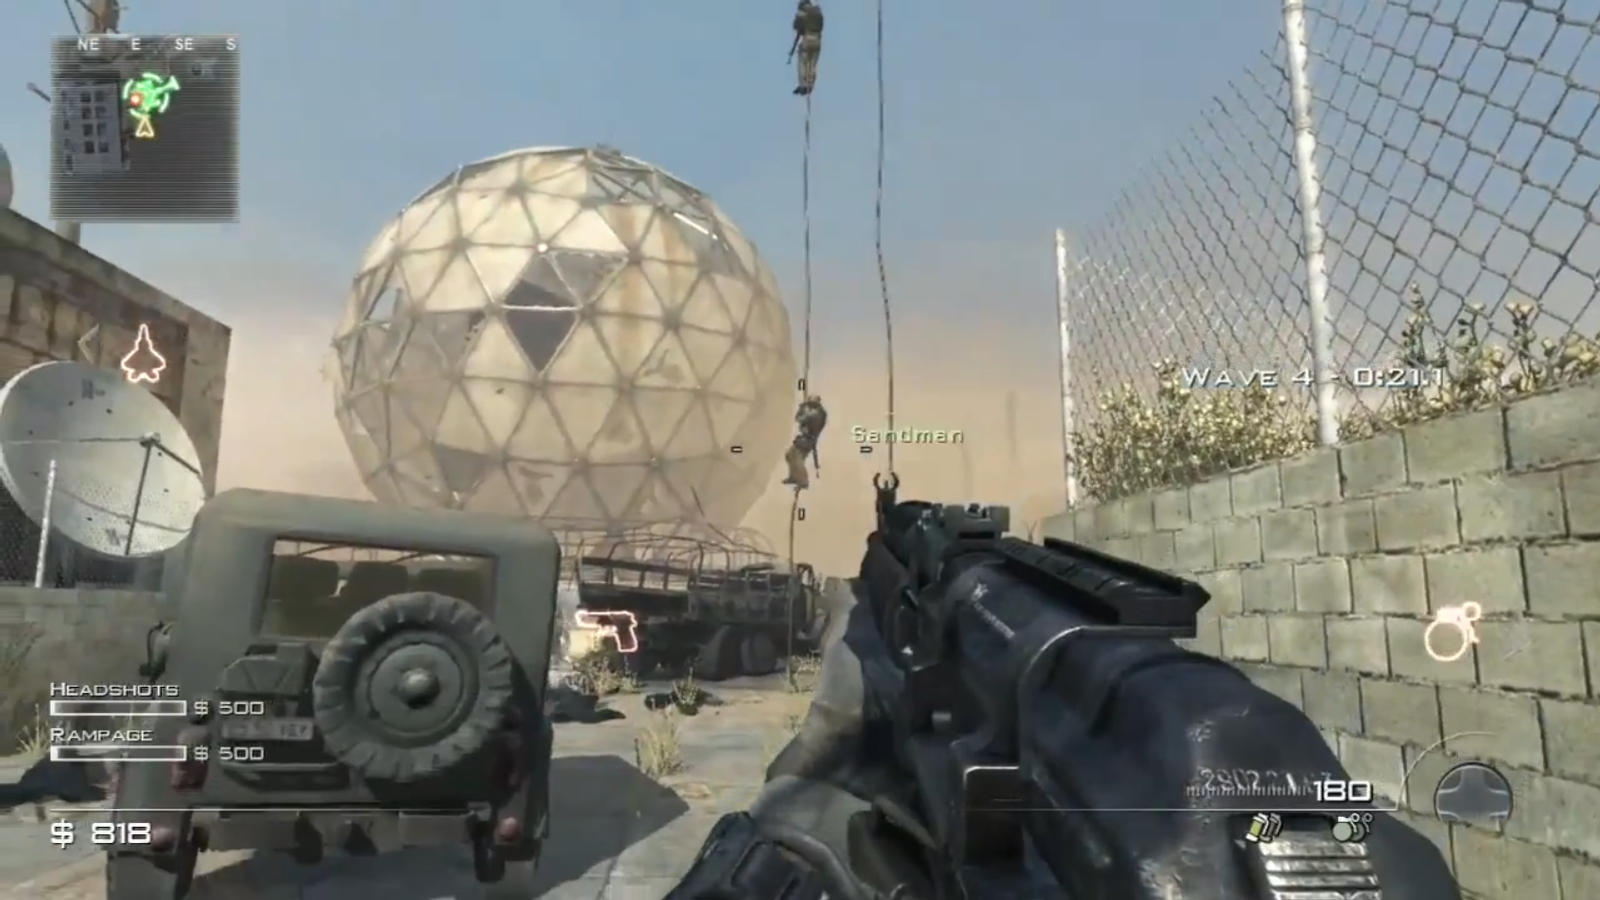 http://images.wikia.com/callofduty/images/4/45/Survival_Mode_Screenshot_24.png